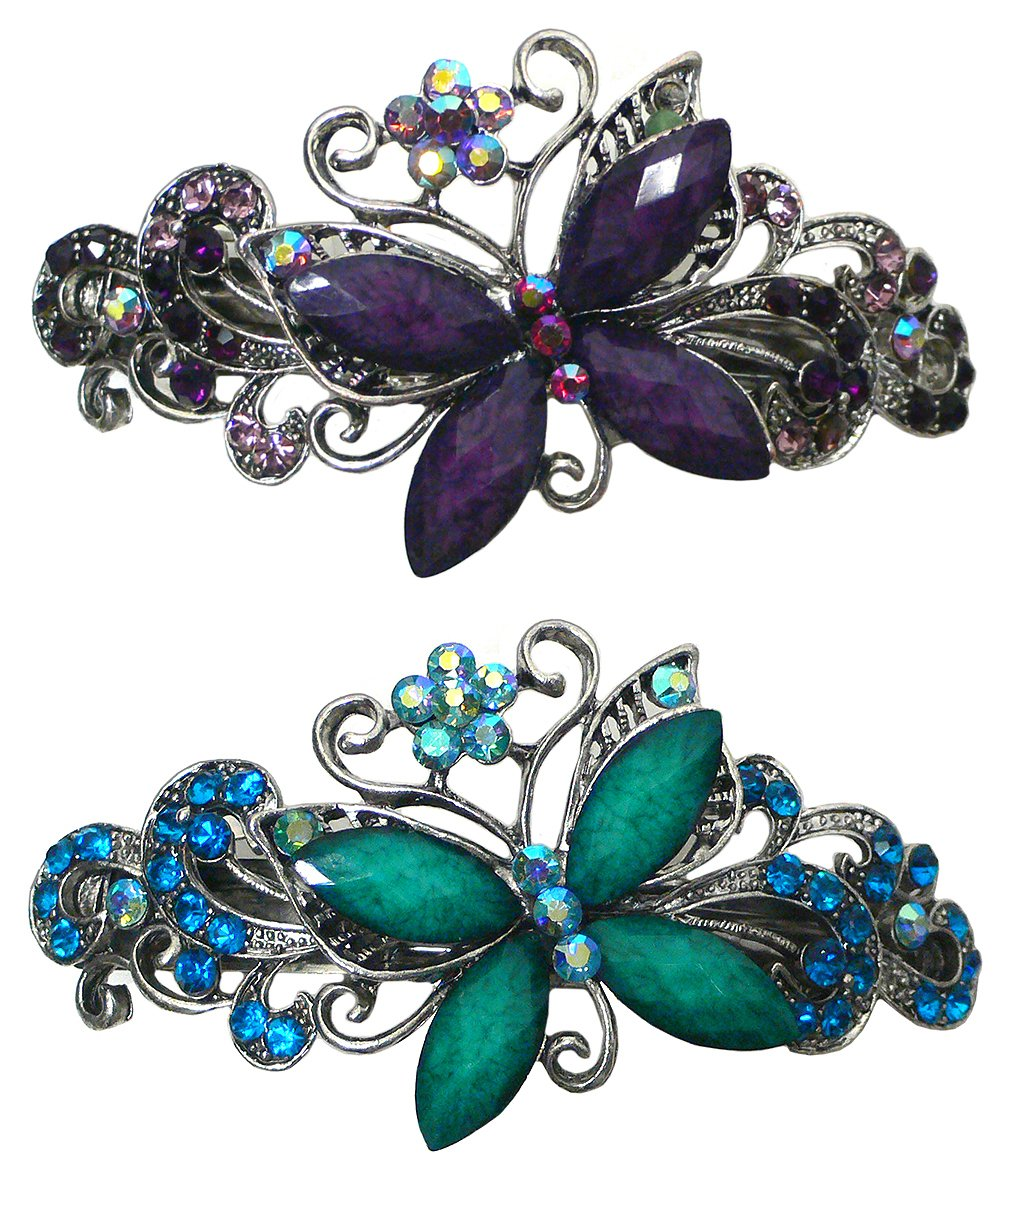 Set of 2 Butterfly Barrettes decorated with Colorful Beads and Rhinestones U86800-0053-2 fundamentals of physics extended 9th edition international student version with wileyplus set